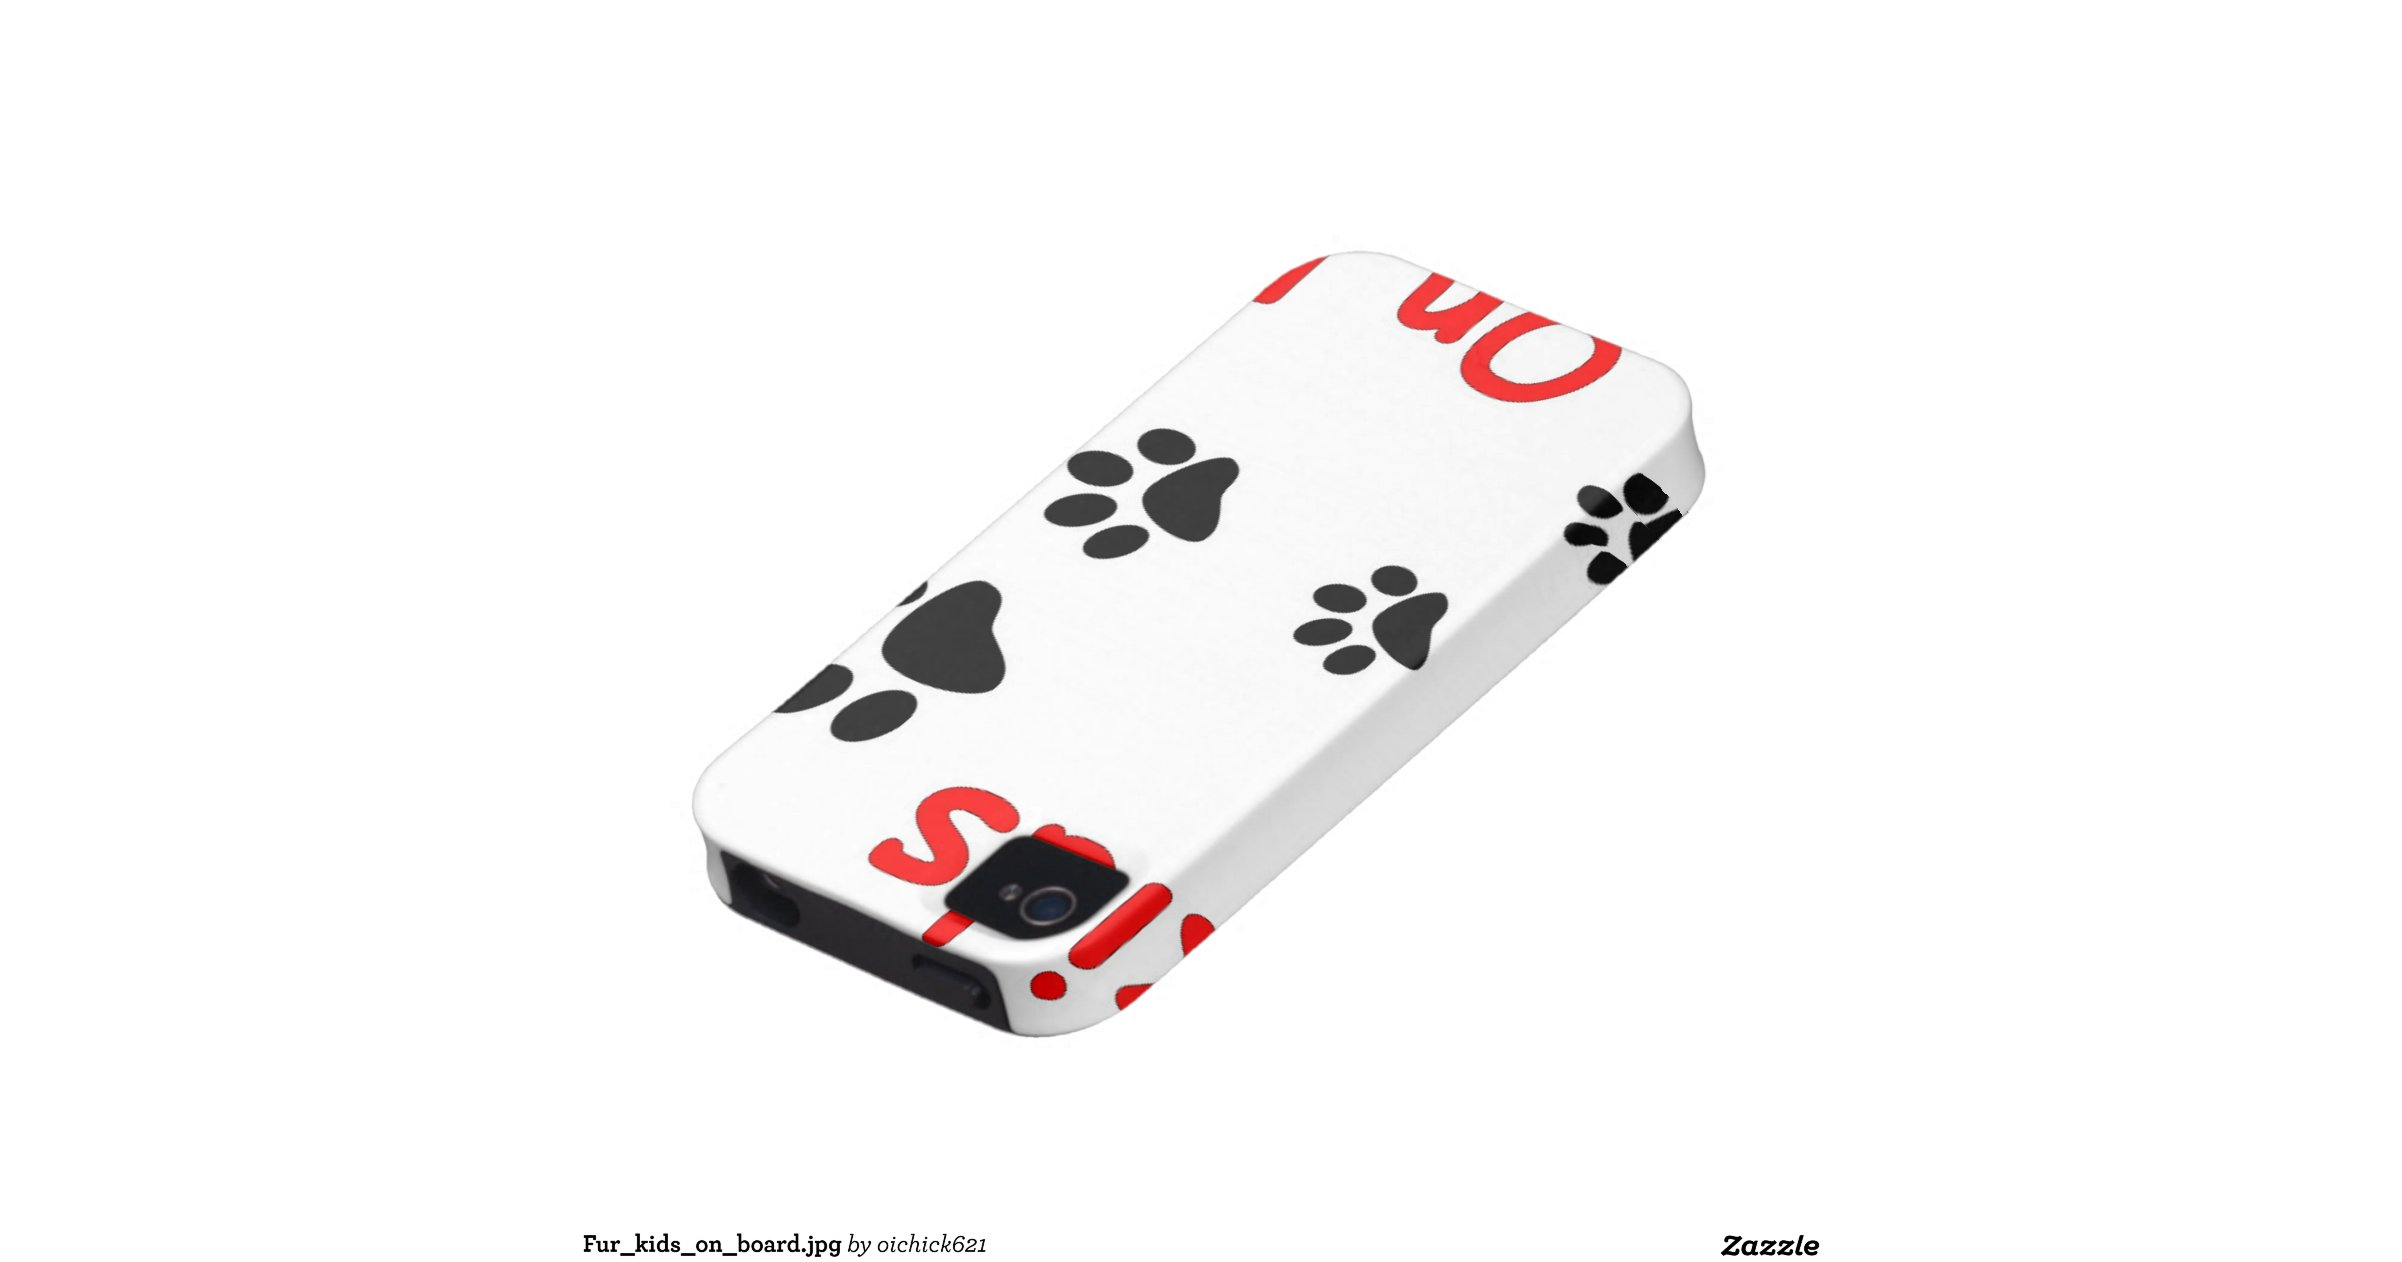 Sarcasm funny sayings and quotes iphone 5 cases 179787746689900543 together with Fox Racing Logo in addition Owl with glasses iphone cases in addition Iphone 4s Cases Metal in addition Fur kids on board   case mate iphone 4 cover 179398563725375234. on cool iphone cases 4s